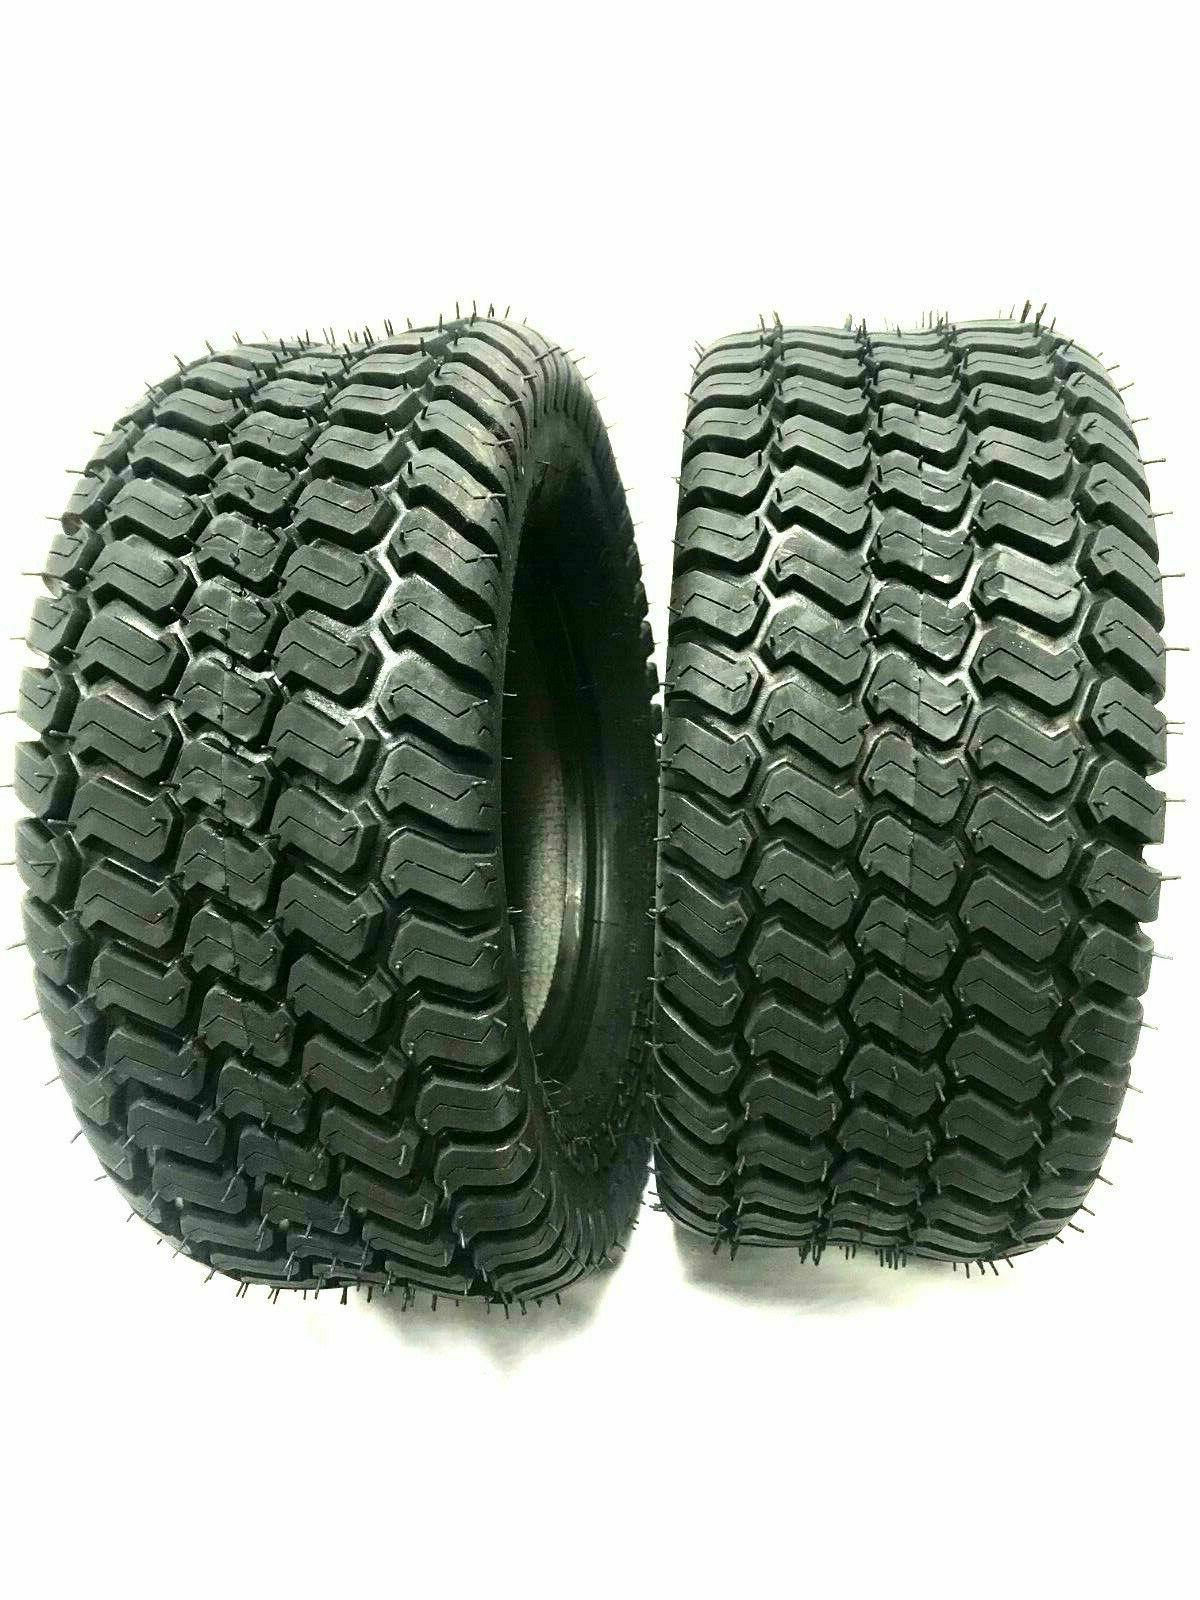 two 20x8 00 10 lawn tractor tires